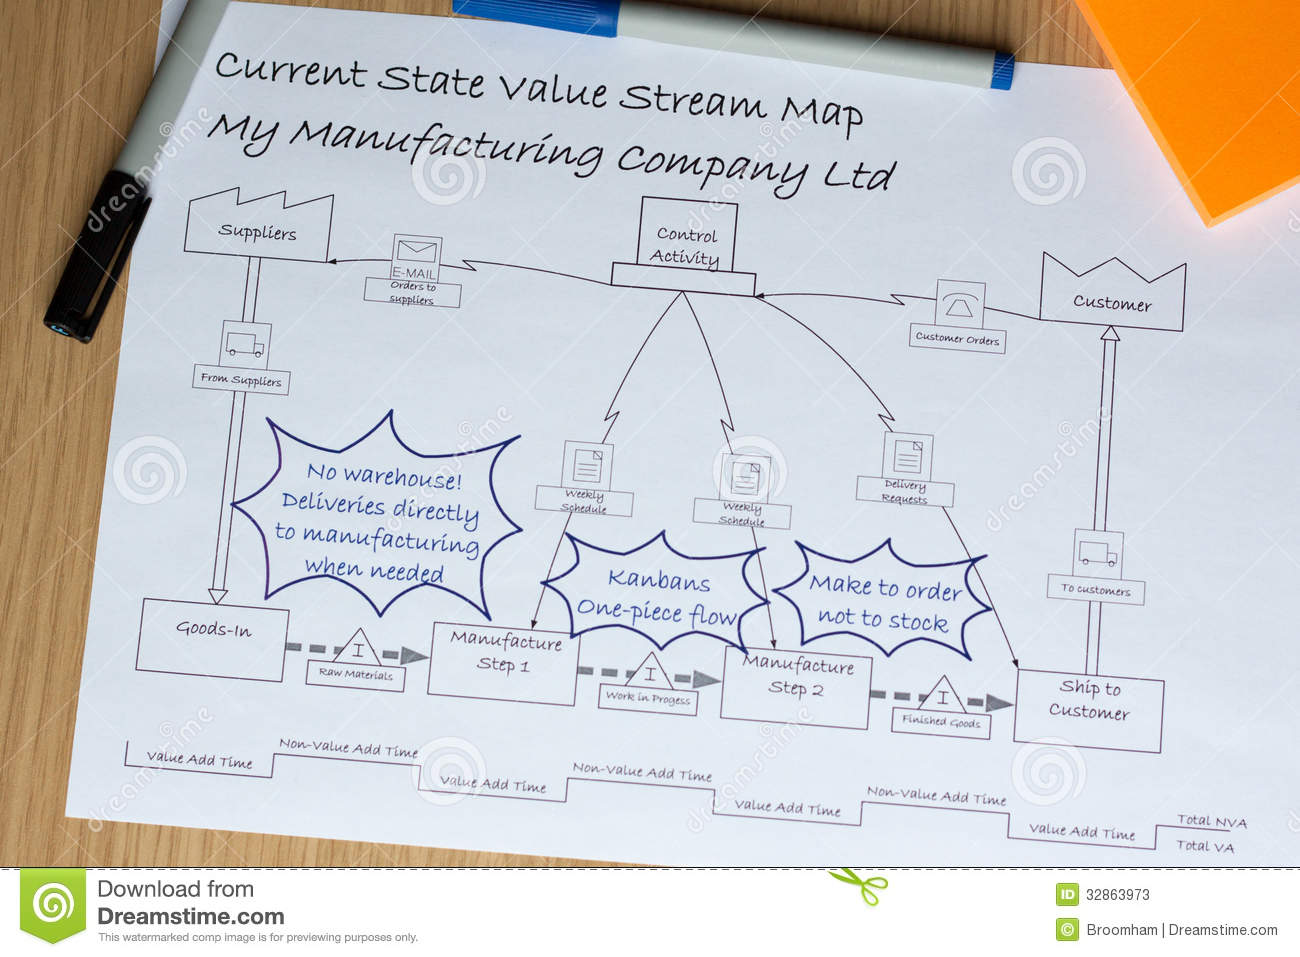 VSM Value Stream Map With Kaizen Improvements Stock Image - Image of on 5s kaizen, continuous improvement kaizen, mini kaizen, value stream process improvement, lean kaizen, process improvement kaizen, muri kaizen, toyota production system kaizen, 6s kaizen,